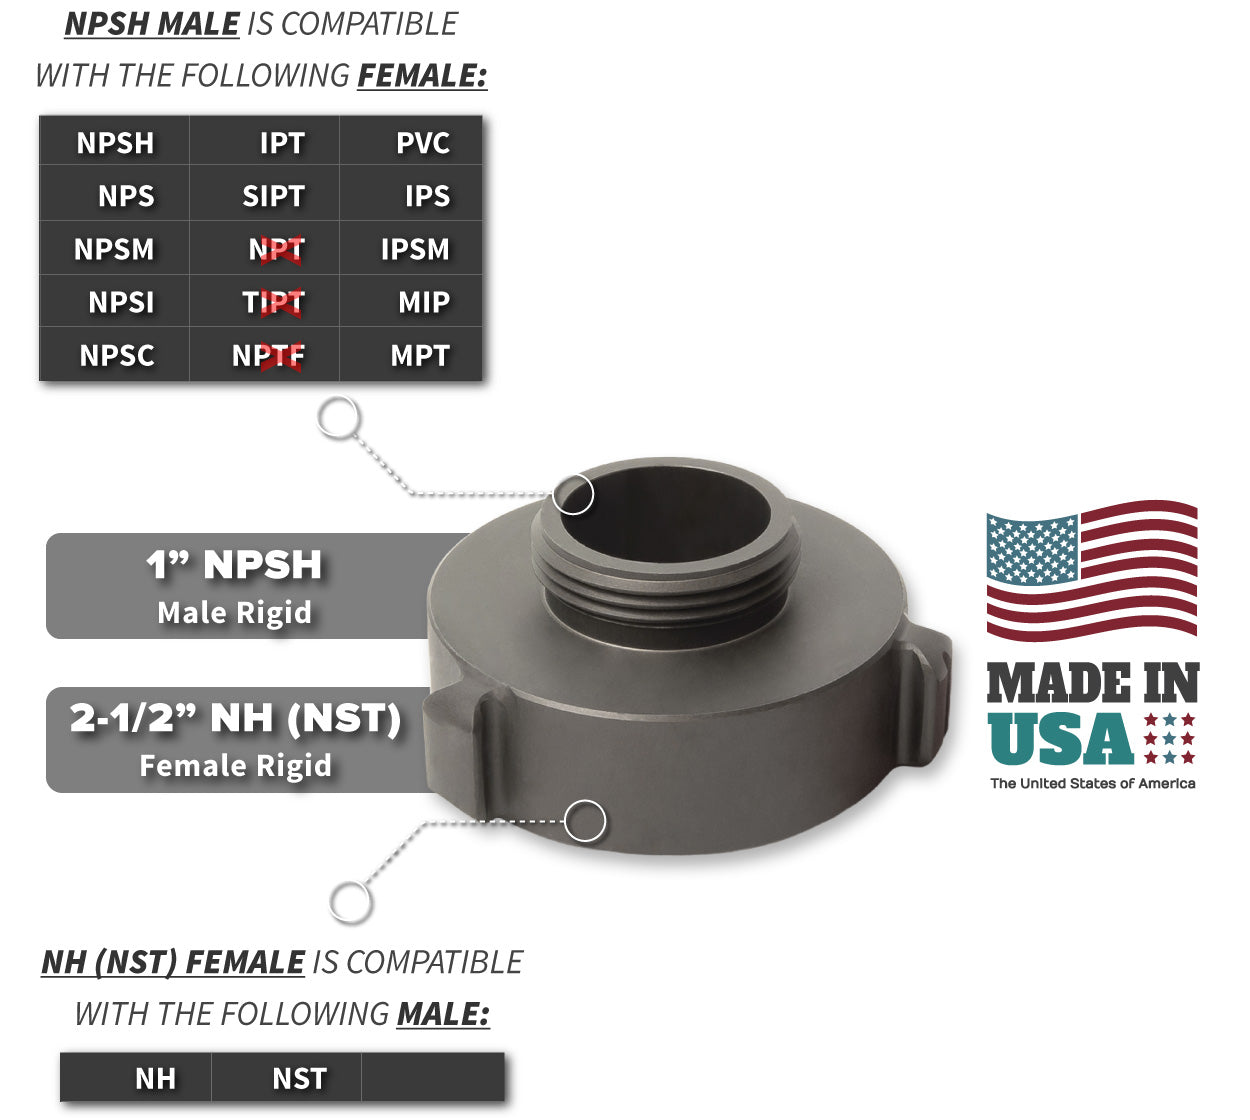 2.5 Inch NH-NST Female x 1 Inch NPSH Male Compatibility Thread Chart